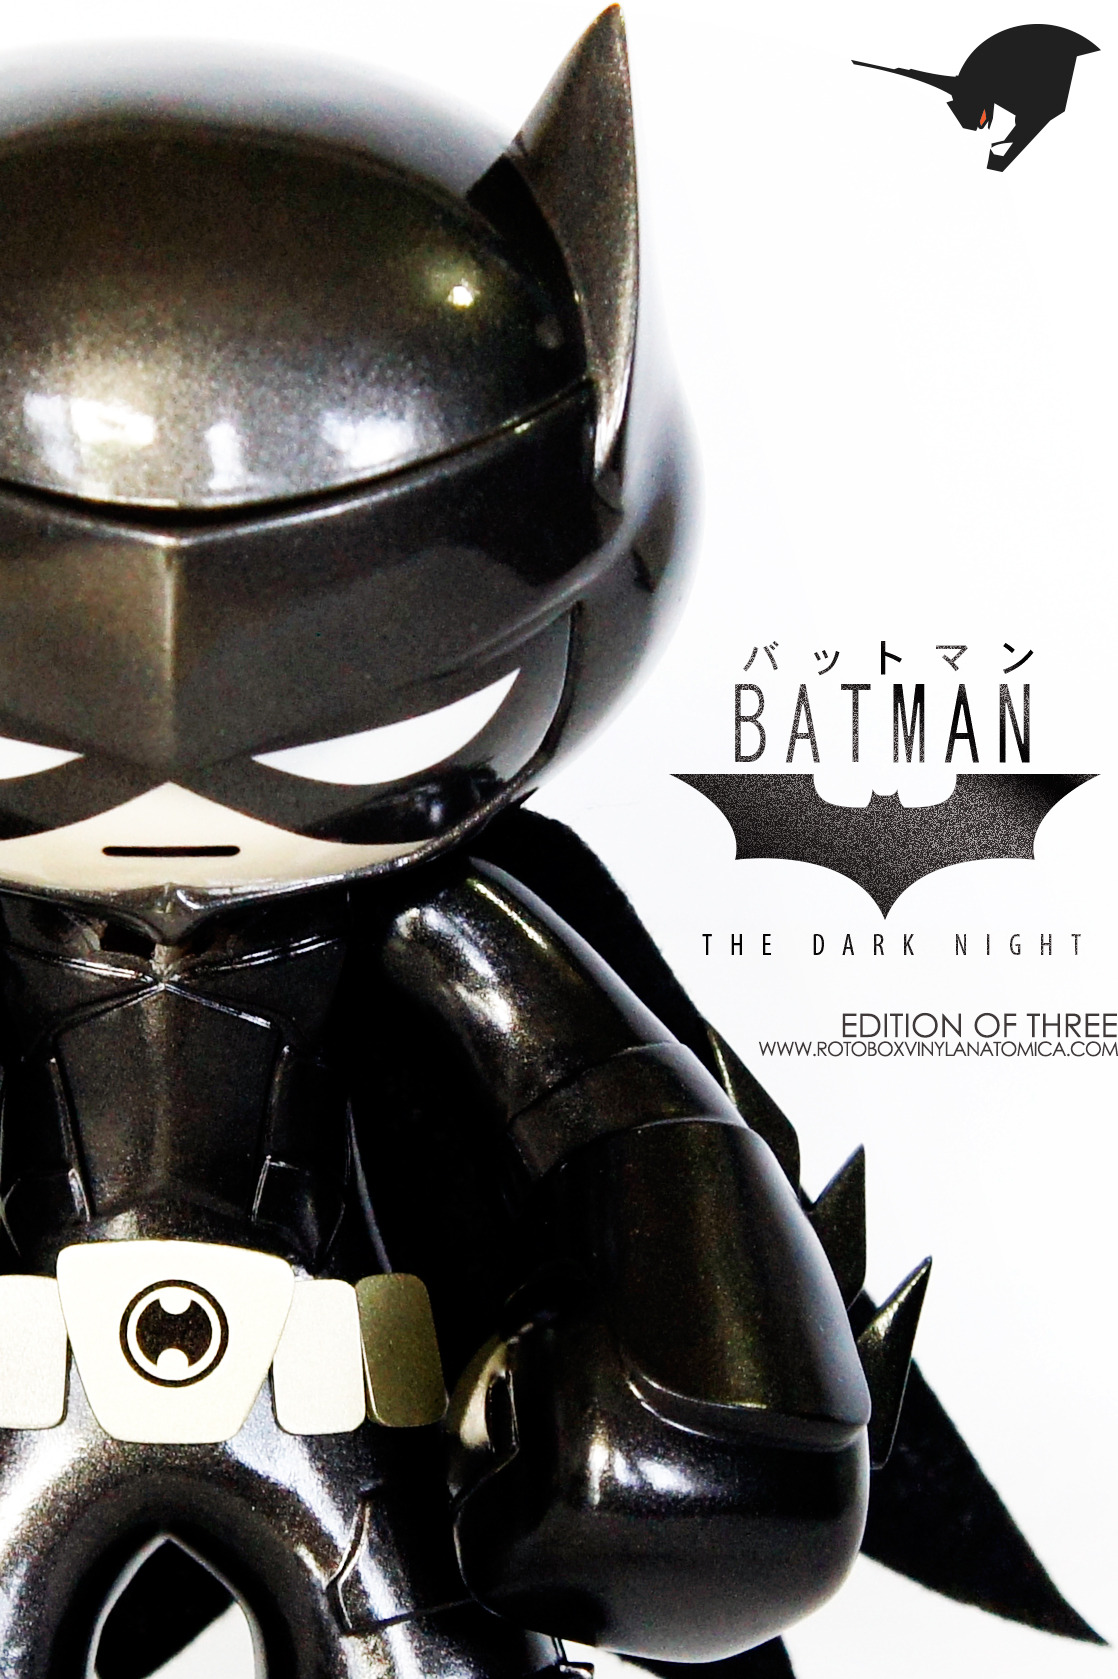 Batman: The Dark Knight Celsius by Rotobox Holy custom vinyl, Batman! Rotobox's newest work is based on the design from the Dark Knight trilogy. The armor is sleek, especially the bat ears, and that metallic dark grey paint job is ridiculously sexy. You can pick up one of the three editions of the toy right here. Check it: More Rotobox on Albotas